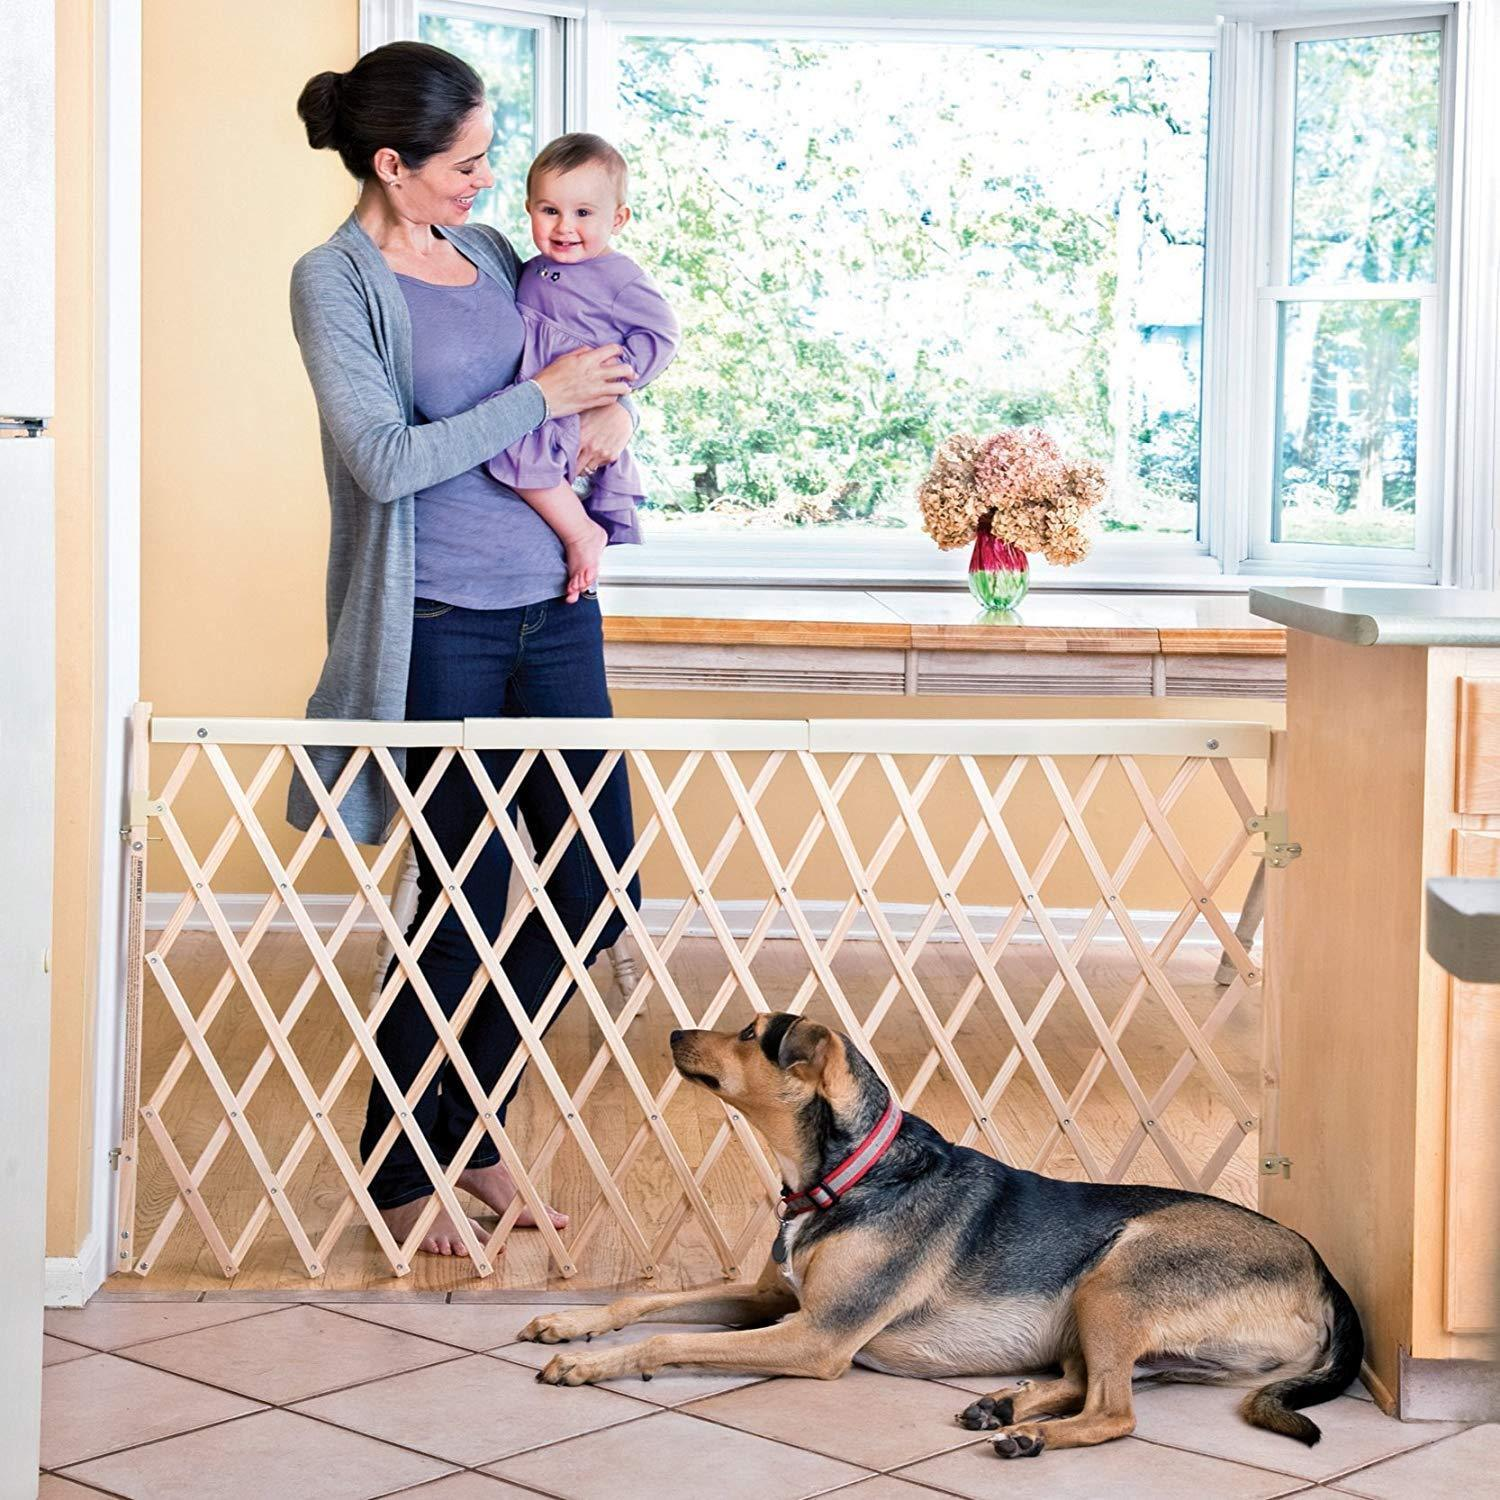 Dog Gate Retractable Extra Wide Swing Expansion Baby Evenflo